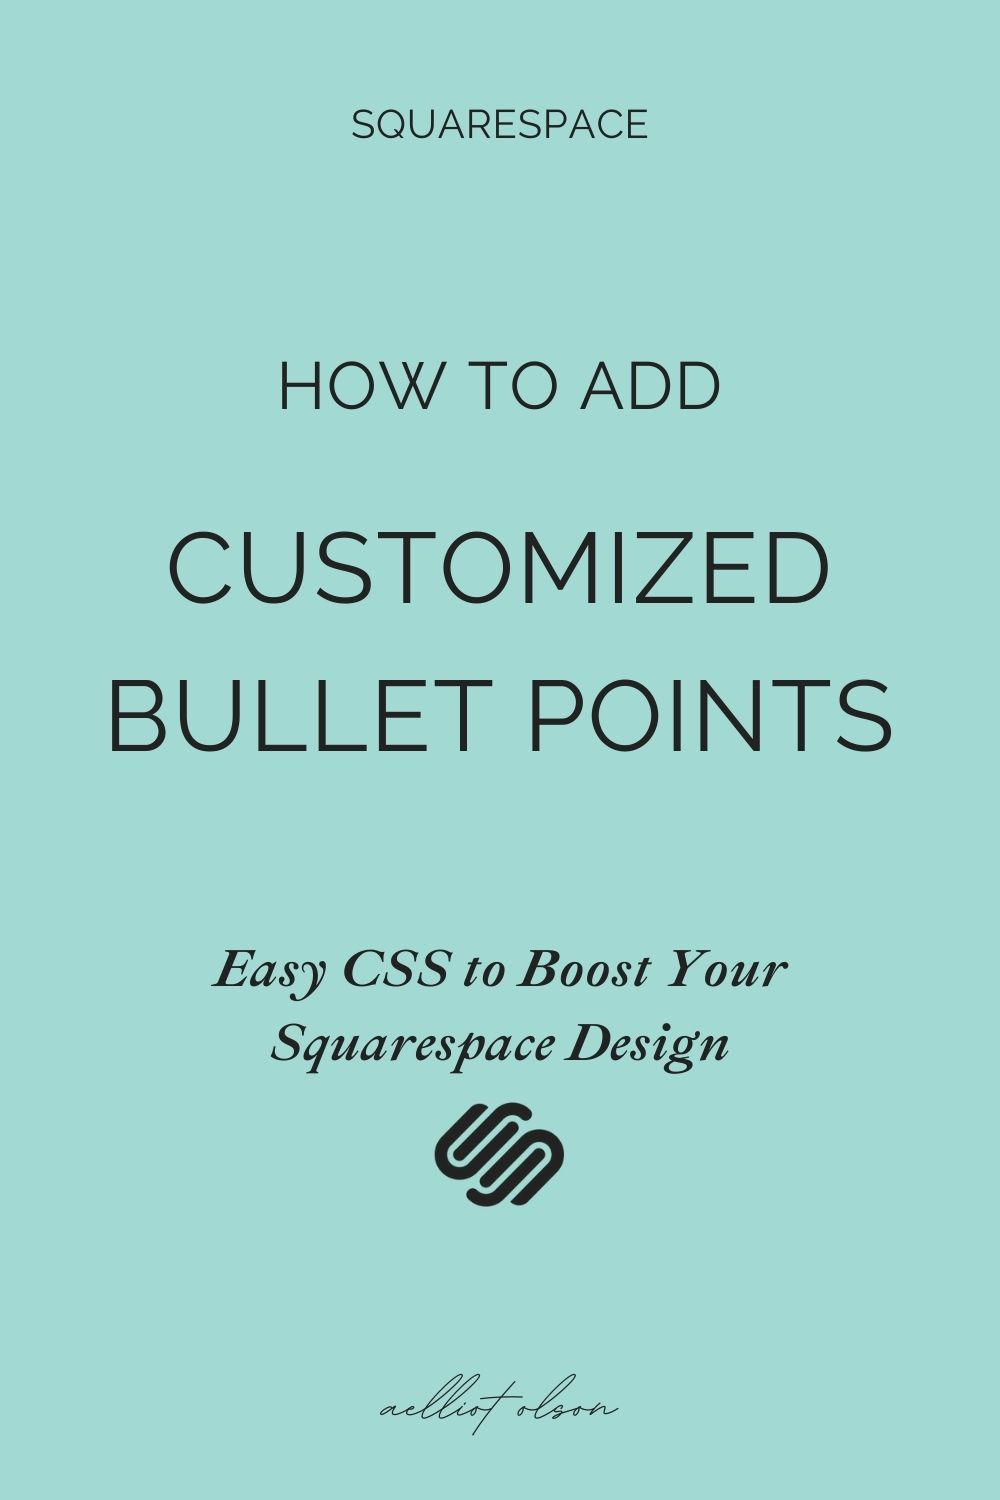 How to add customized bullet points. Easy css to boost your squarespace design.